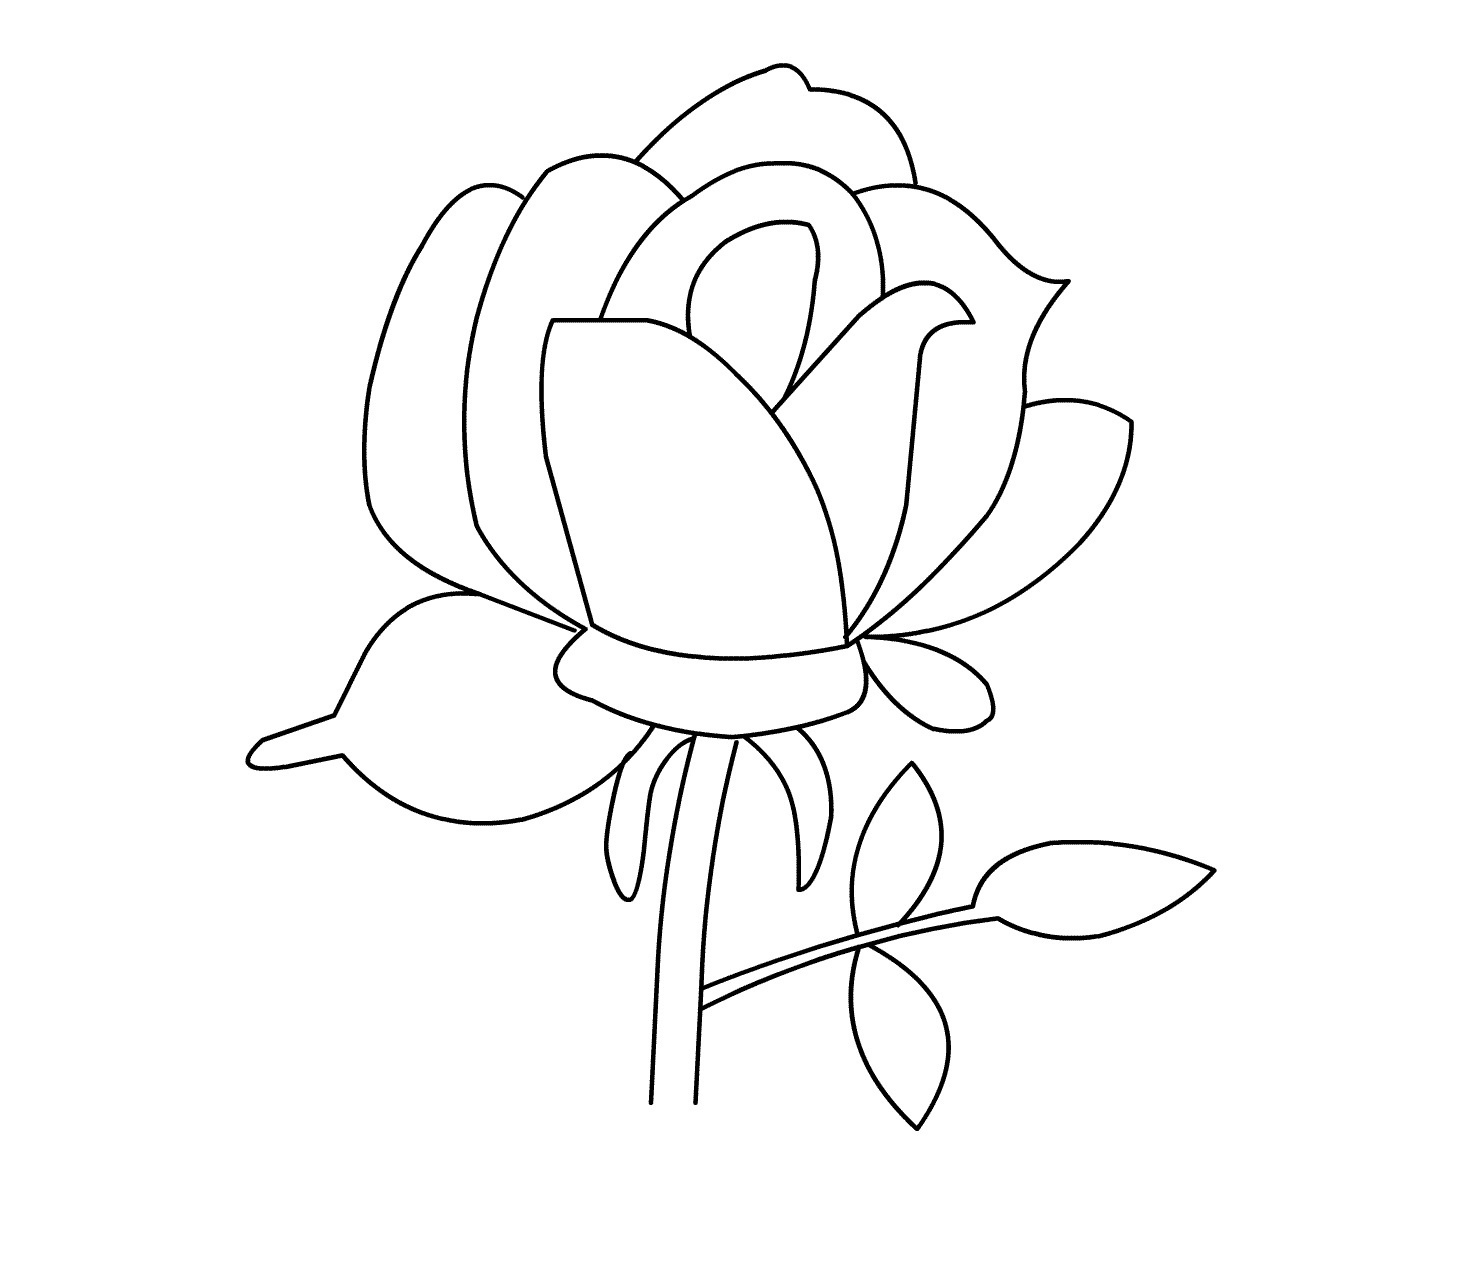 free printable roses coloring for kids rose of crayola chalk worst watercolor paints coloring pages Rose Coloring Page